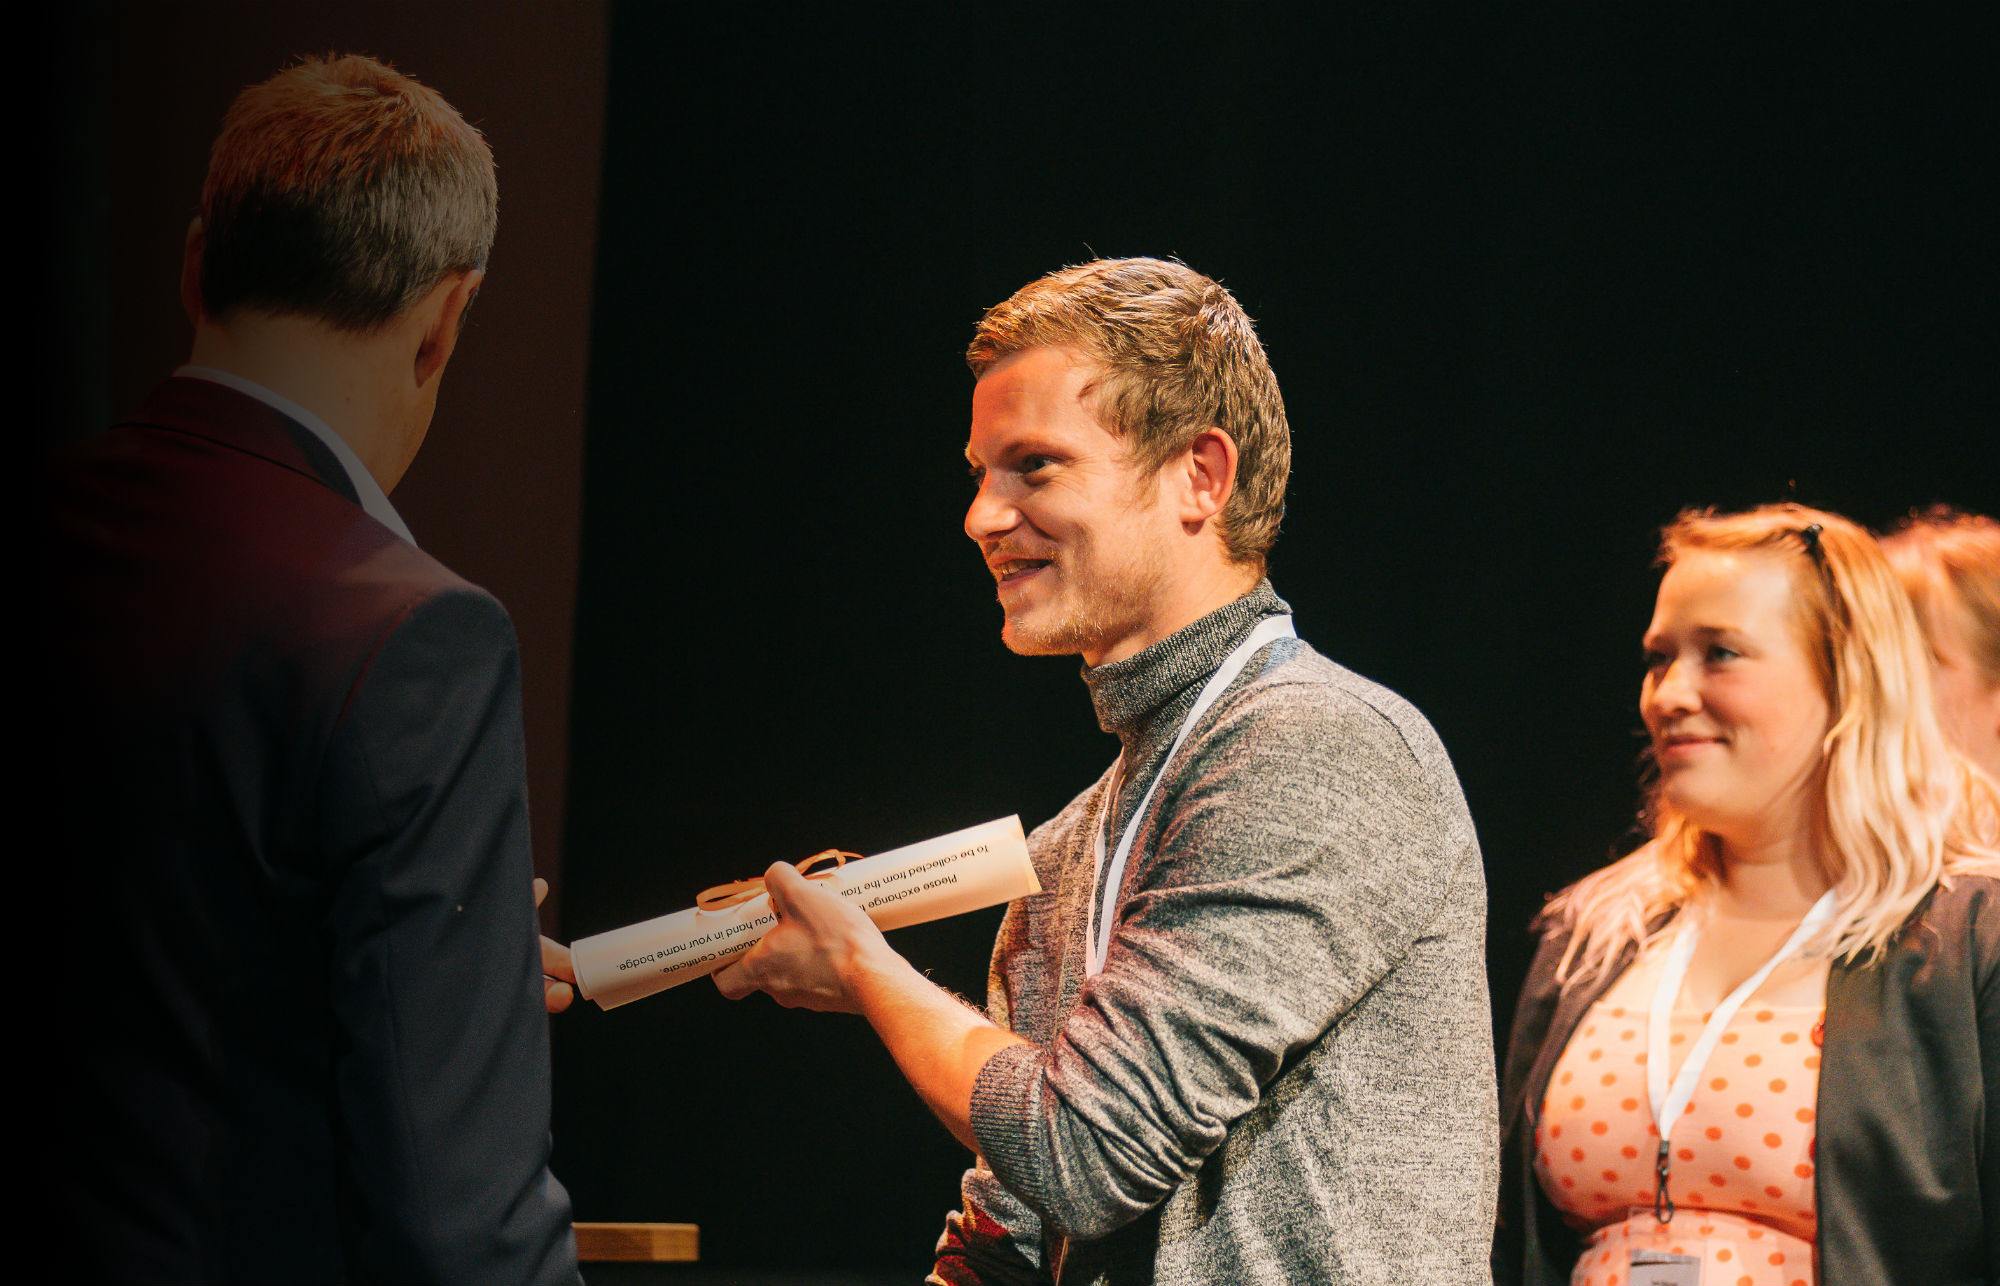 Fuller's staff member receiving graduation certificate at ceremony